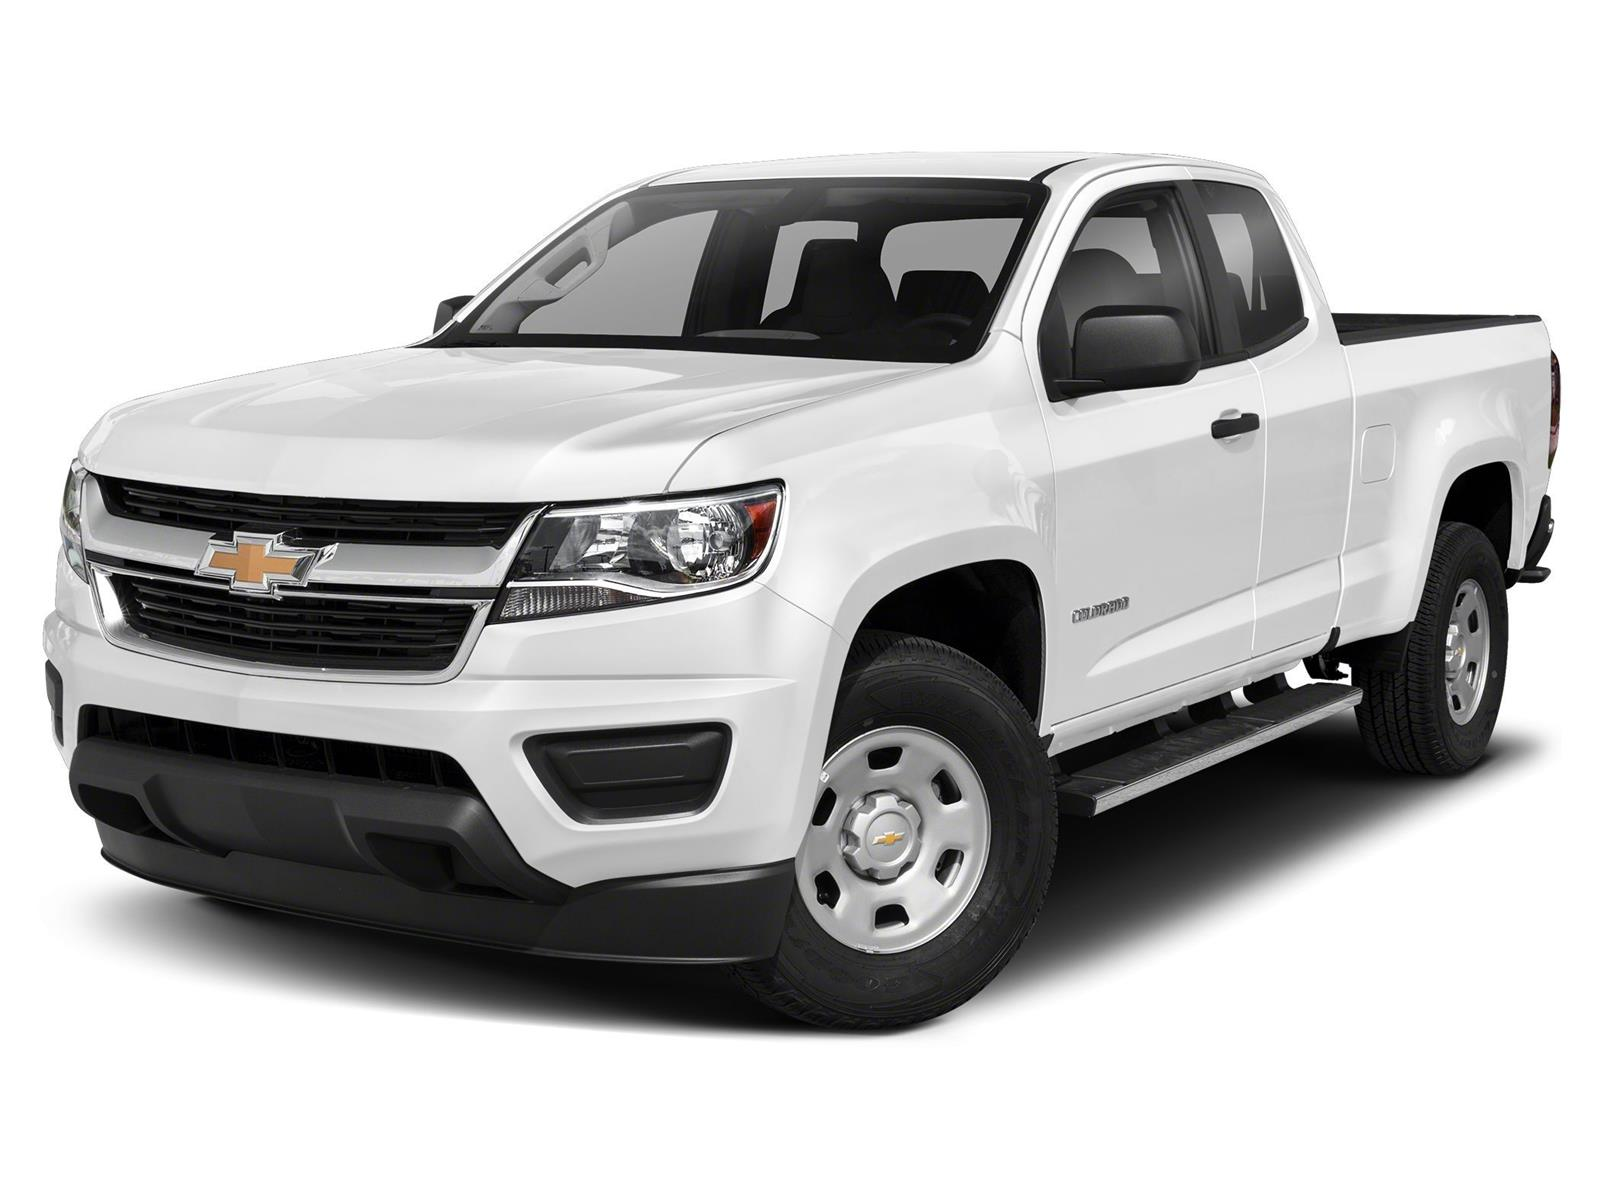 2020 Colorado Extended Cab 4x4, Pickup #BCD500 - photo 1